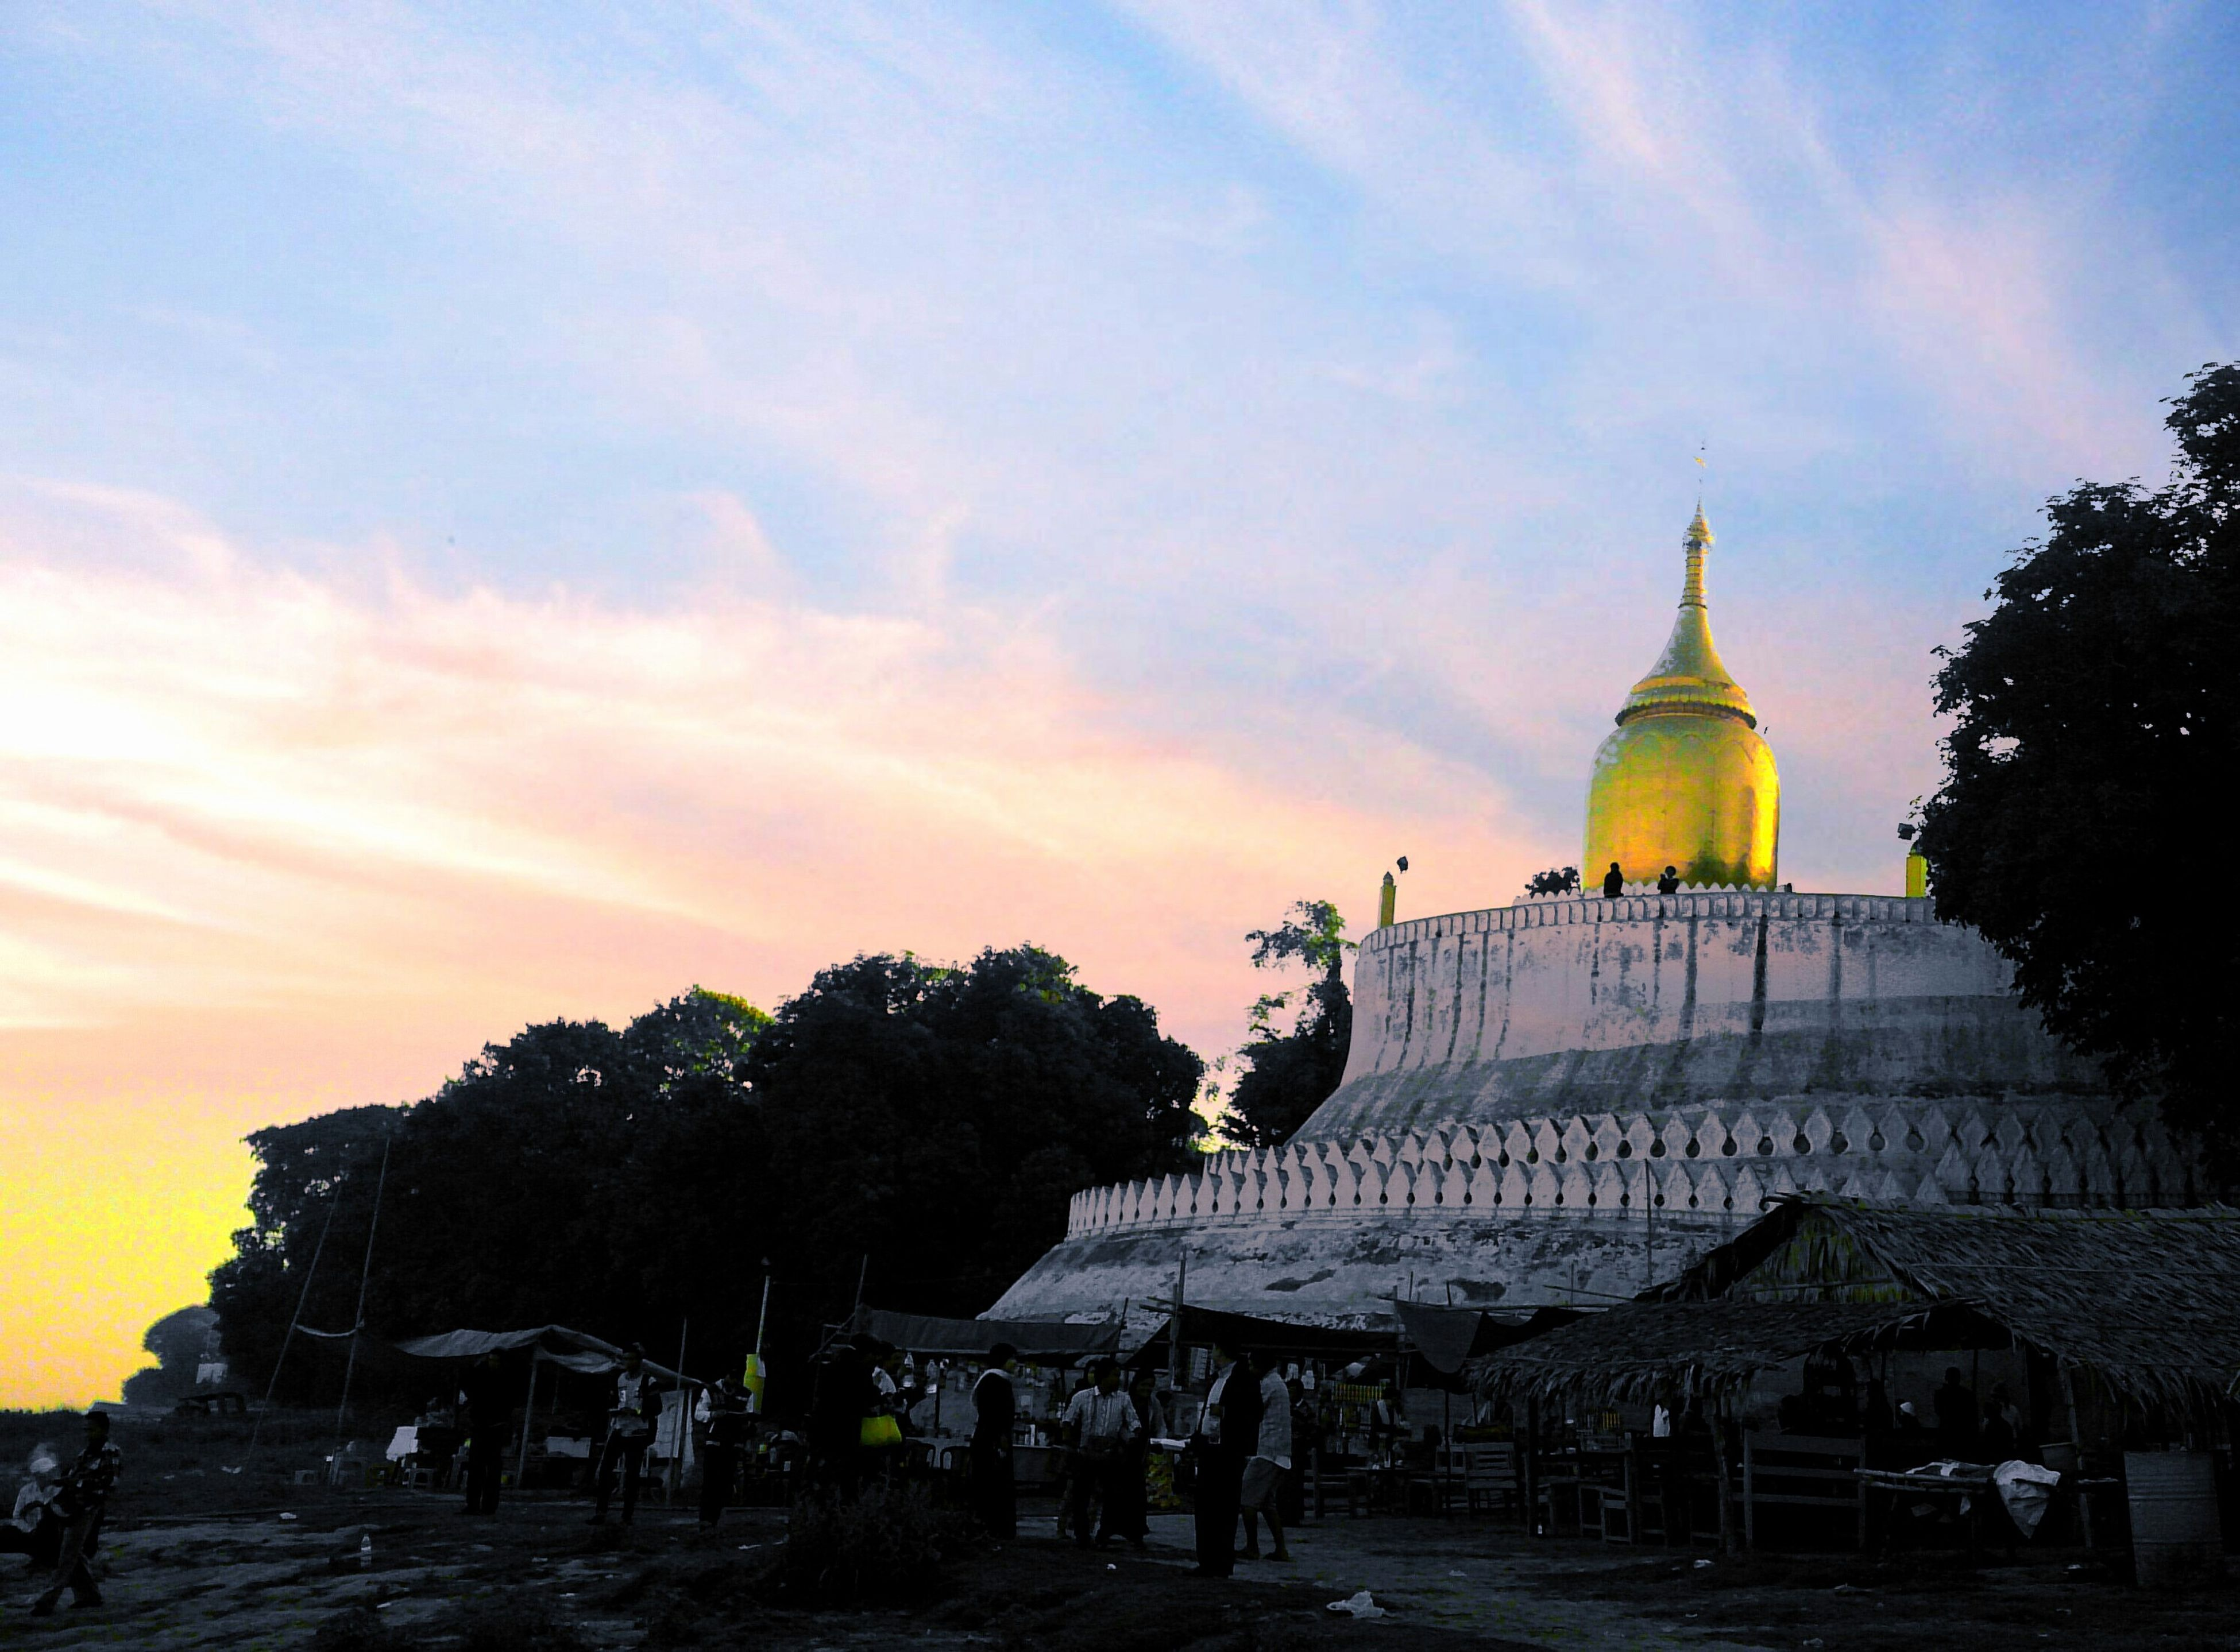 architecture, building exterior, place of worship, built structure, religion, spirituality, sky, church, dome, cloud - sky, temple - building, famous place, tree, cathedral, cloud, travel destinations, history, travel